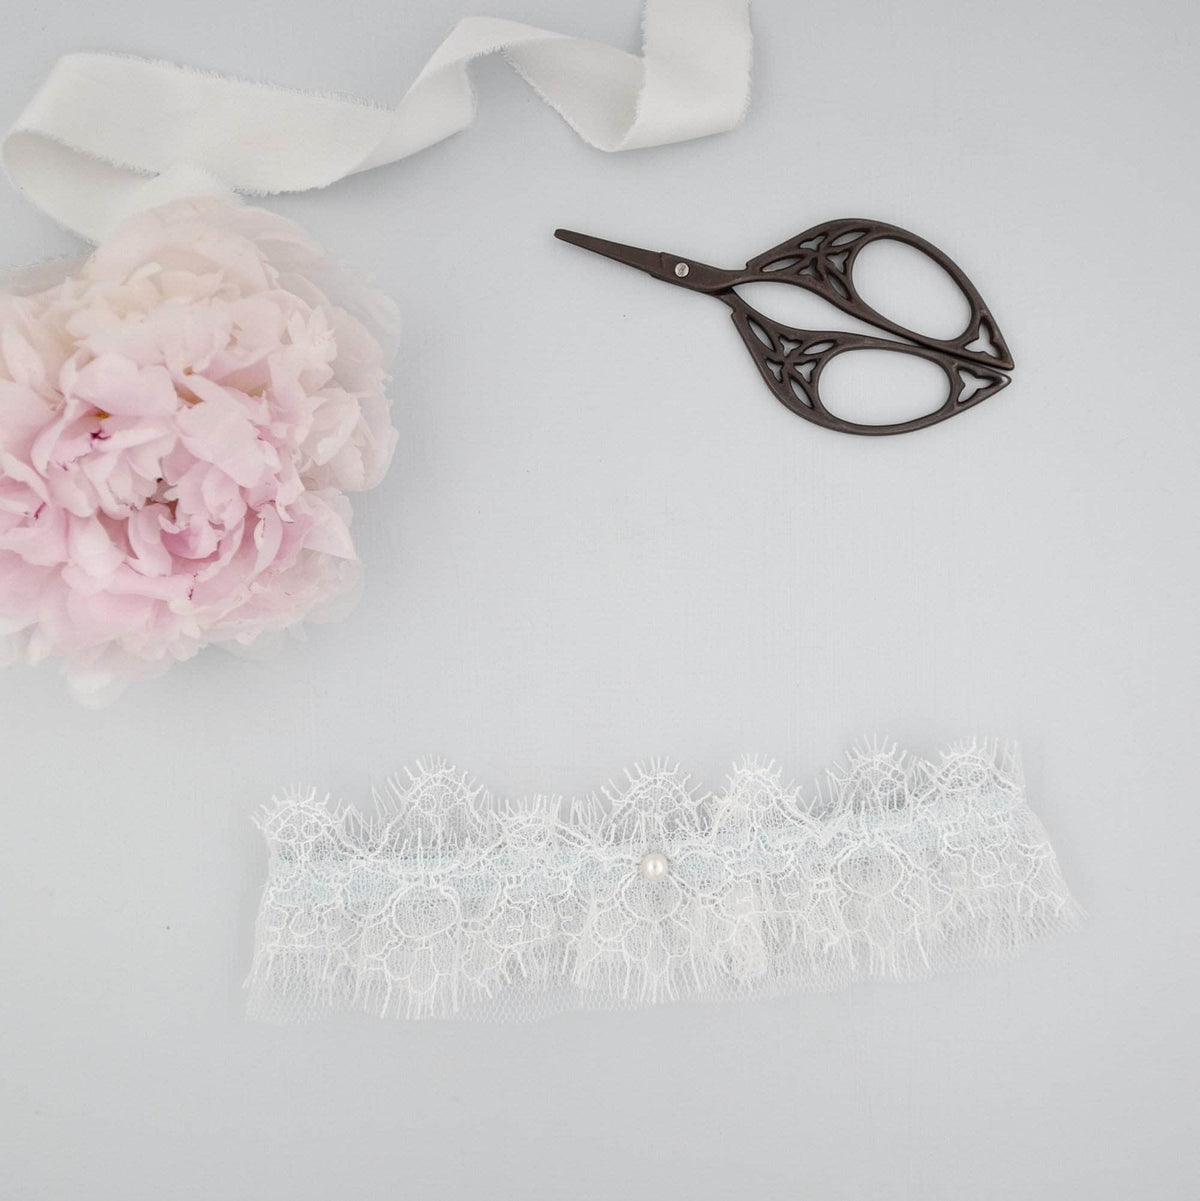 Eyelash lace and 'something blue' wedding garter - 'Mia'